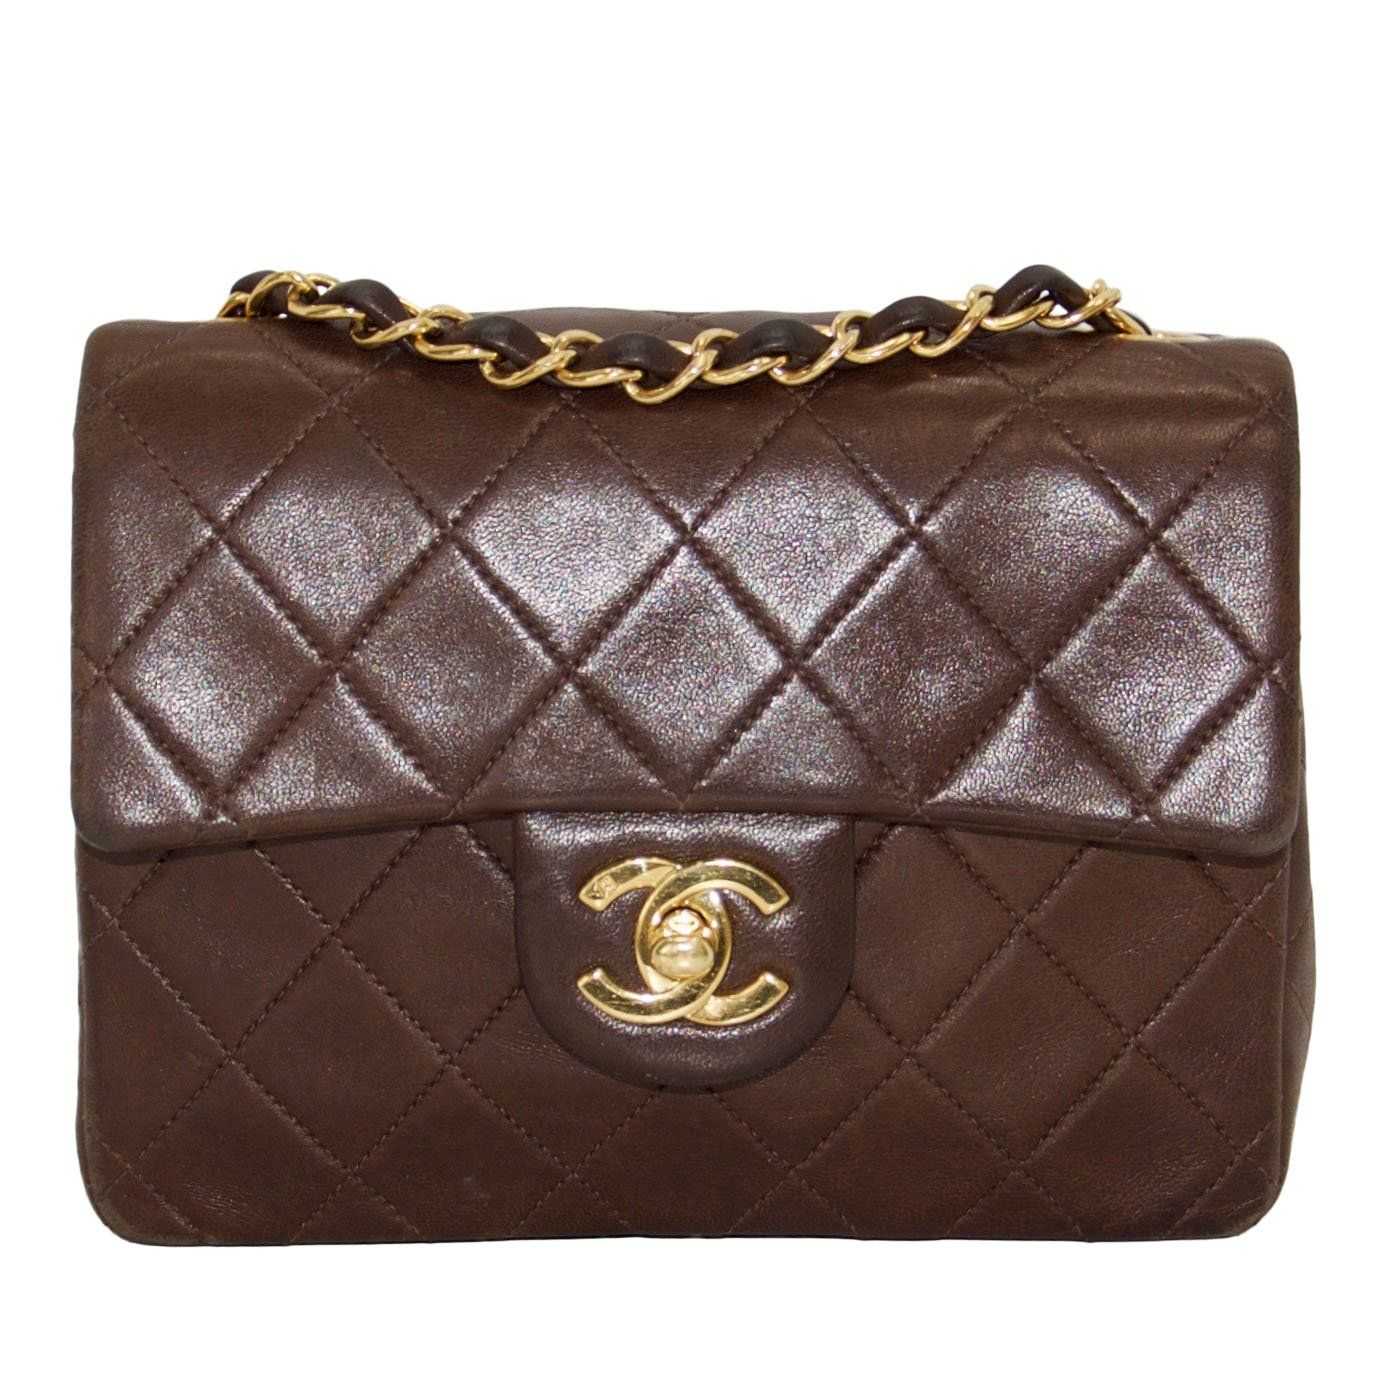 outlet store hottest sale great discount sale Chanel Vintage Chocolate Brown Lambskin Classic Mini Square Flap Bag